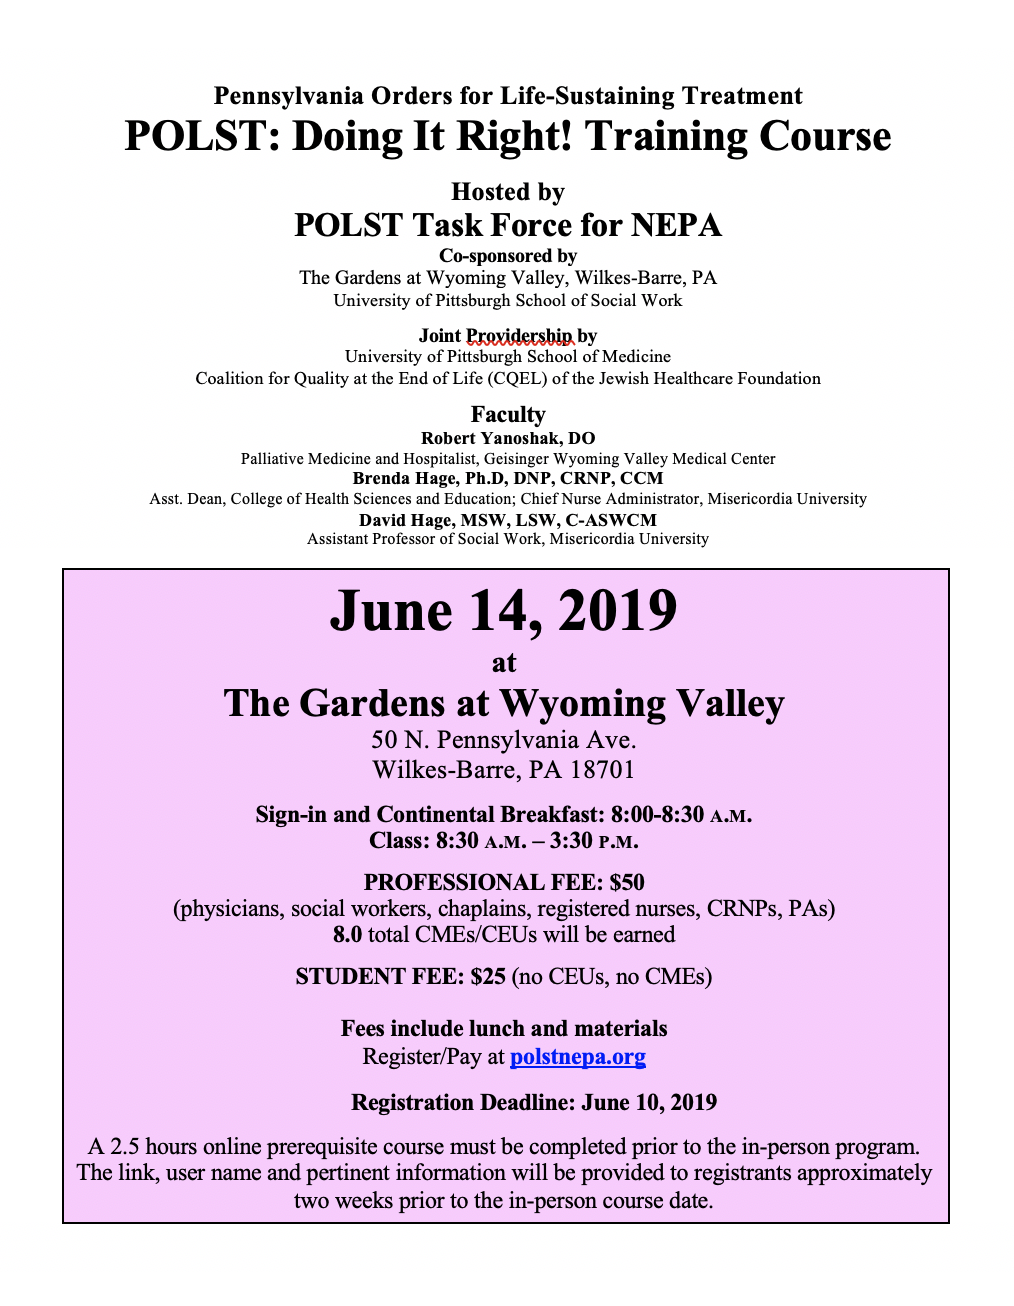 June 14 2019 POLST Training Flier